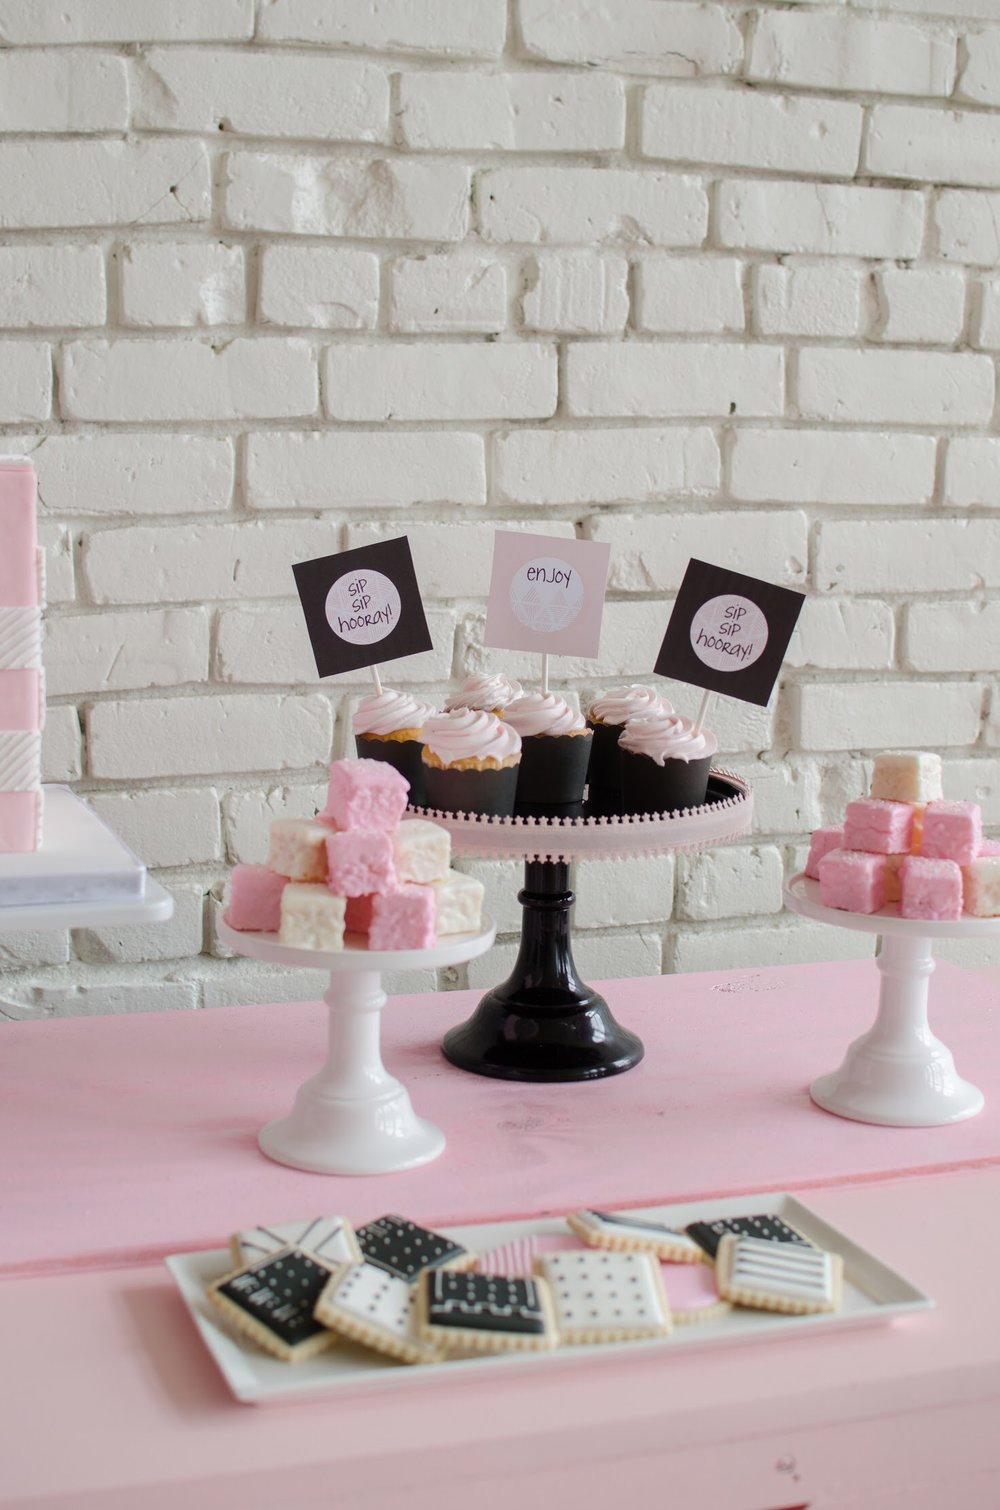 Loving this dessert table styled by Mint Event Design